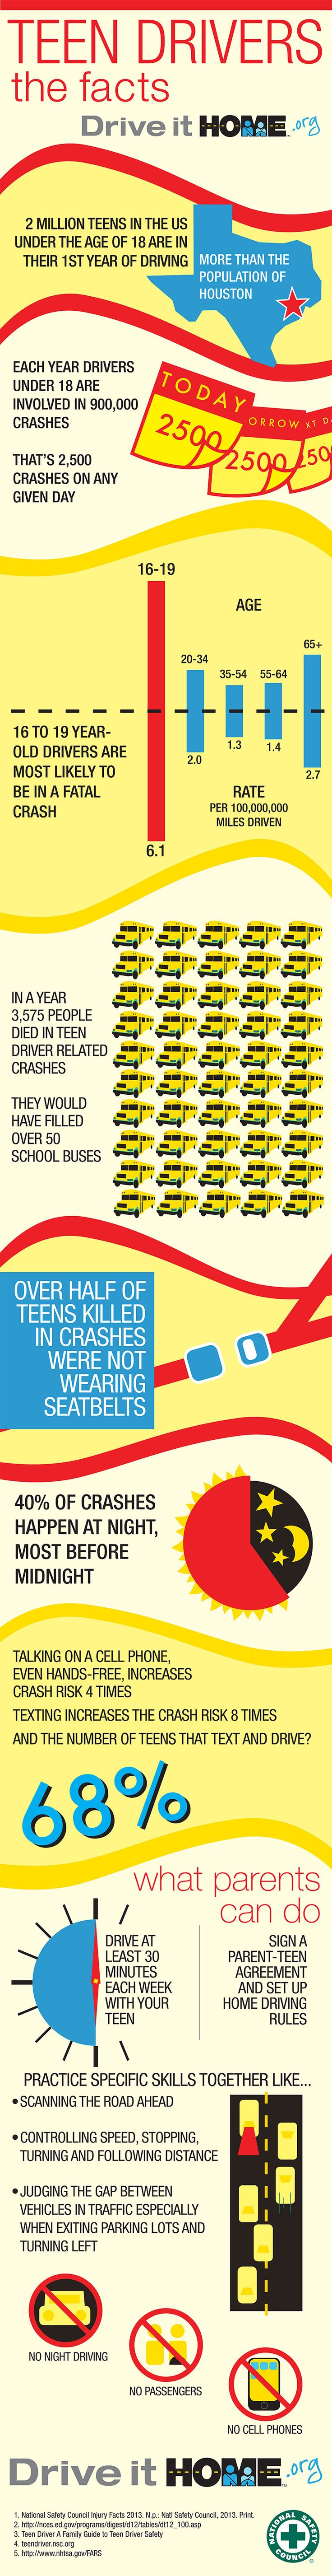 Teen drivers the facts